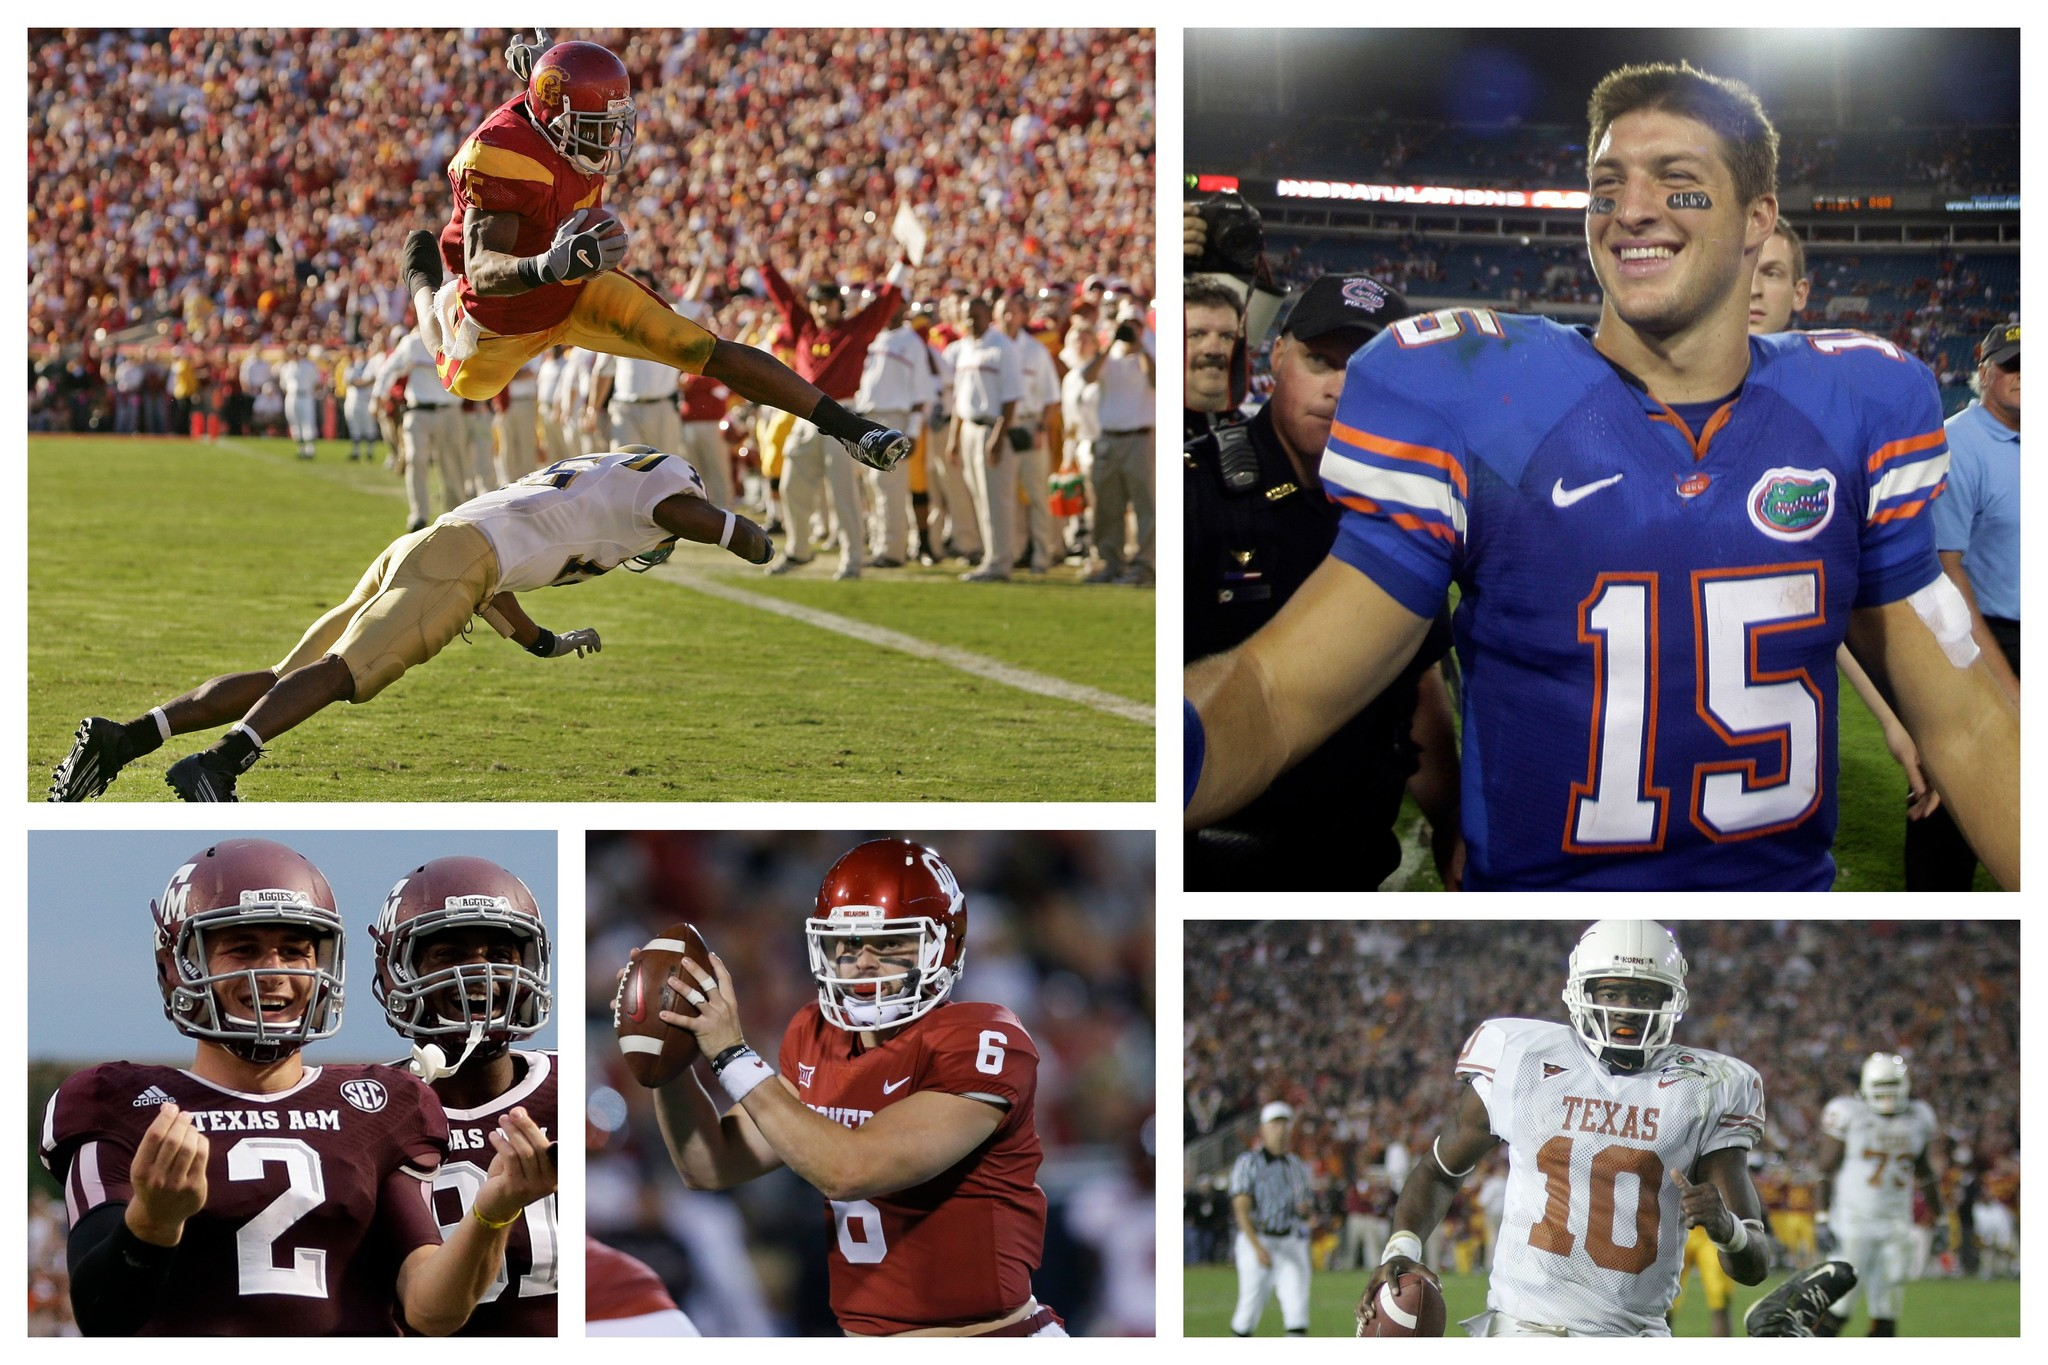 Reggie Bush, Tim Tebow, Johnny Manziel, Baker Mayfield y Vince Young.